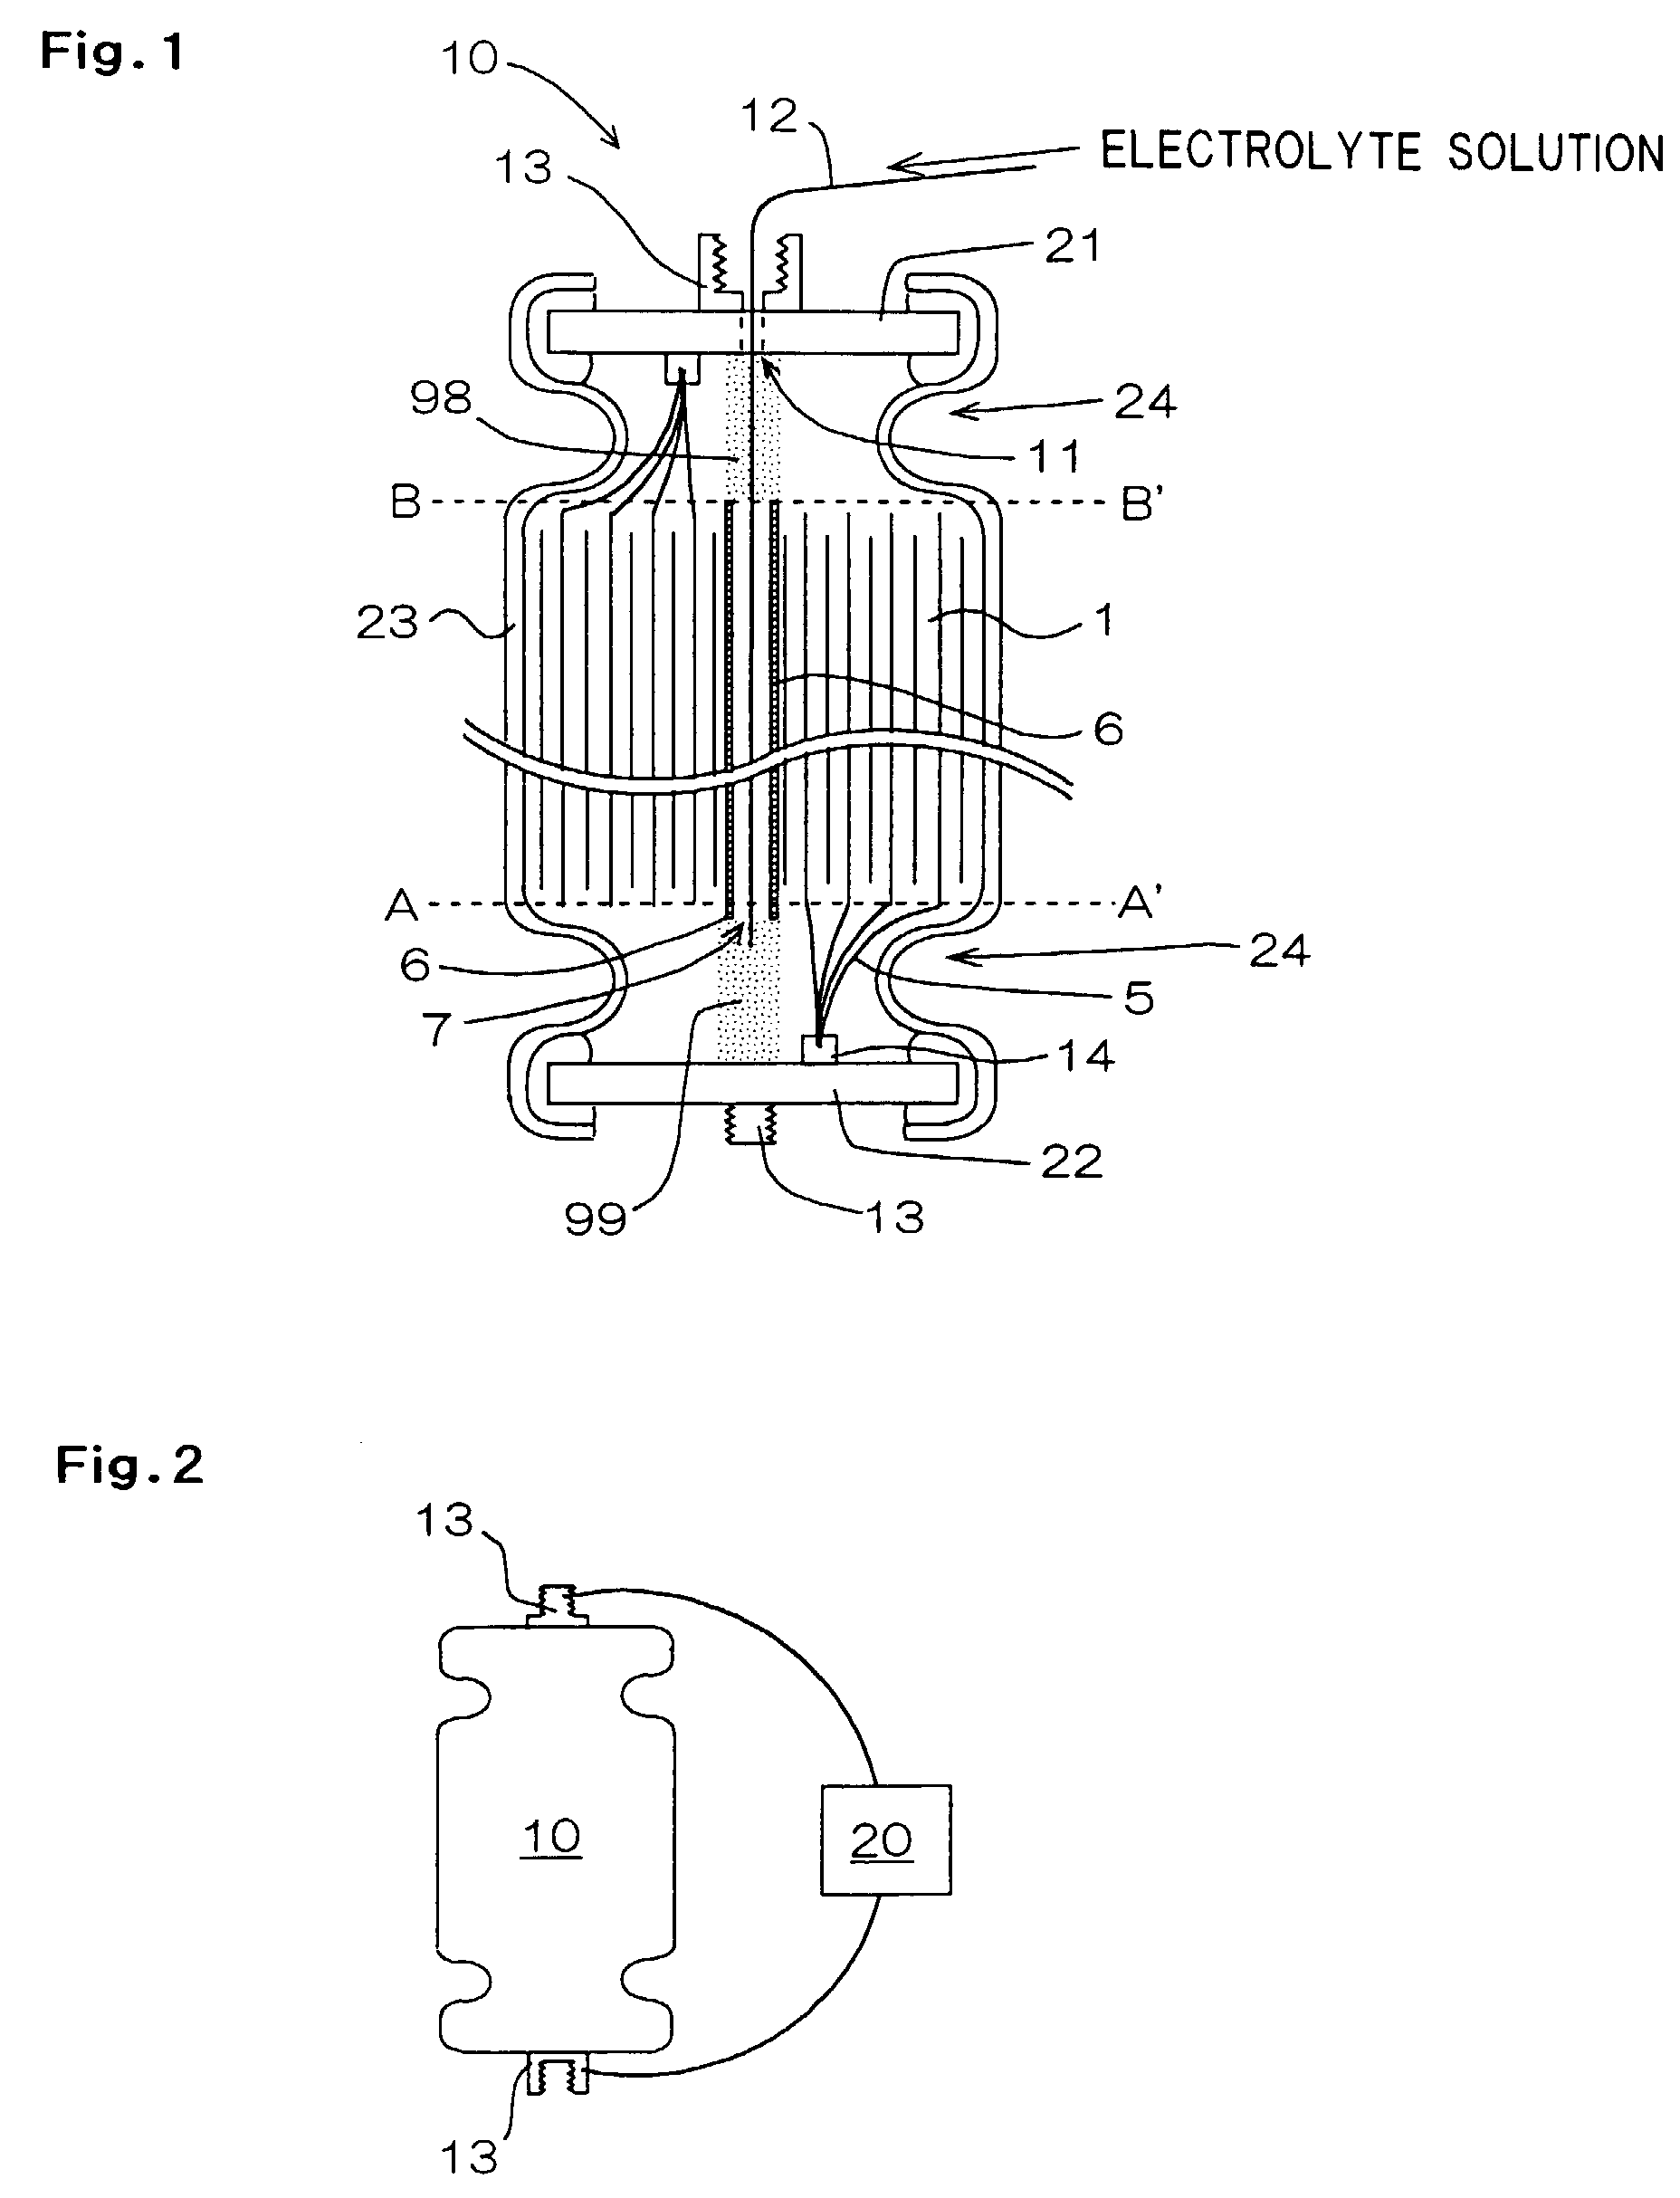 Hawker Powersource Battery Cell Diagram Patent Ep0994519a2 Electrolyte Solution Filling Method And Drawing